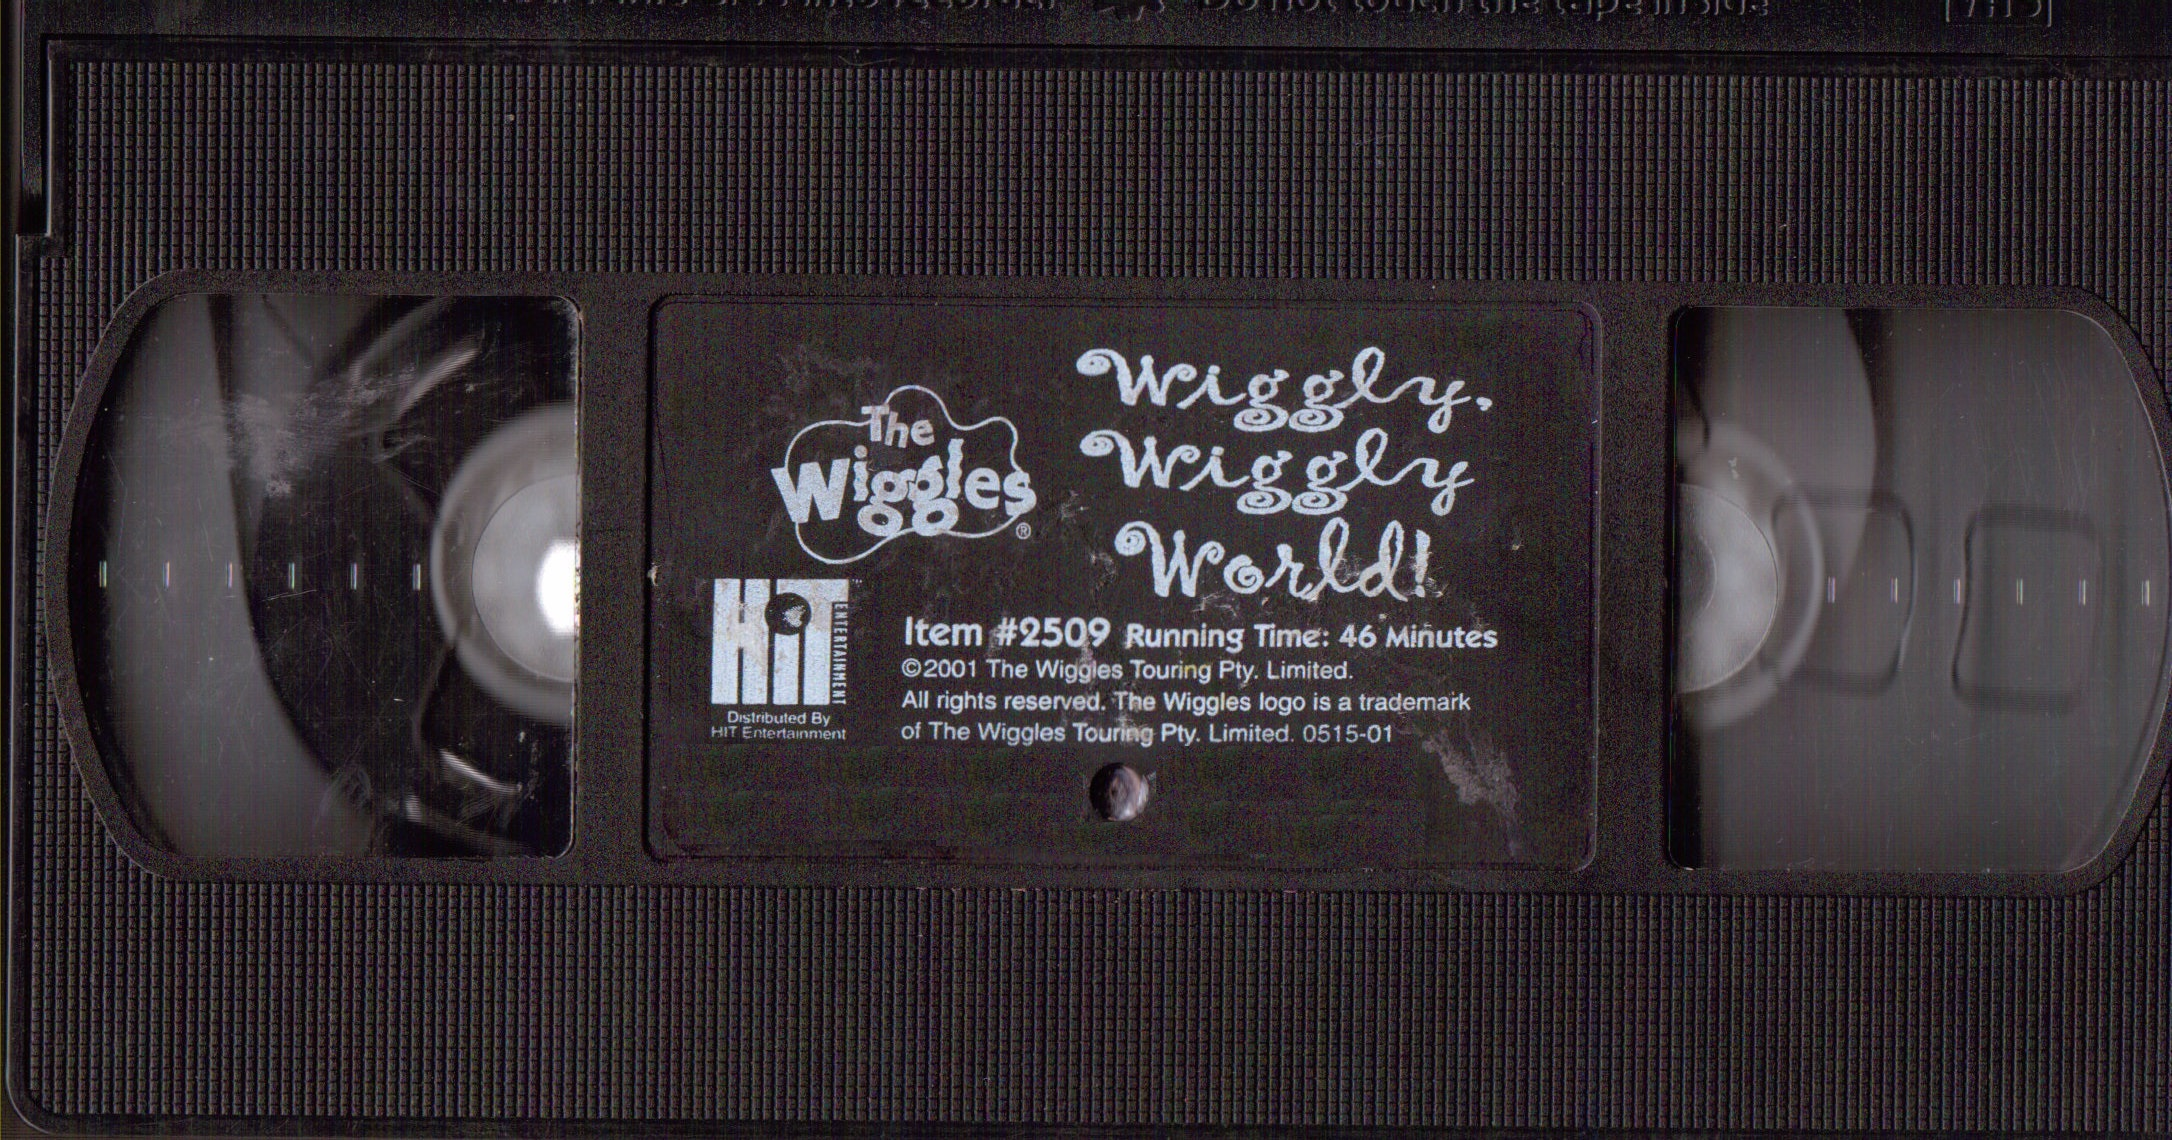 File Wiggly WigglyWorldVHS jpgThe Wiggles Wiggly Wiggly World Vhs